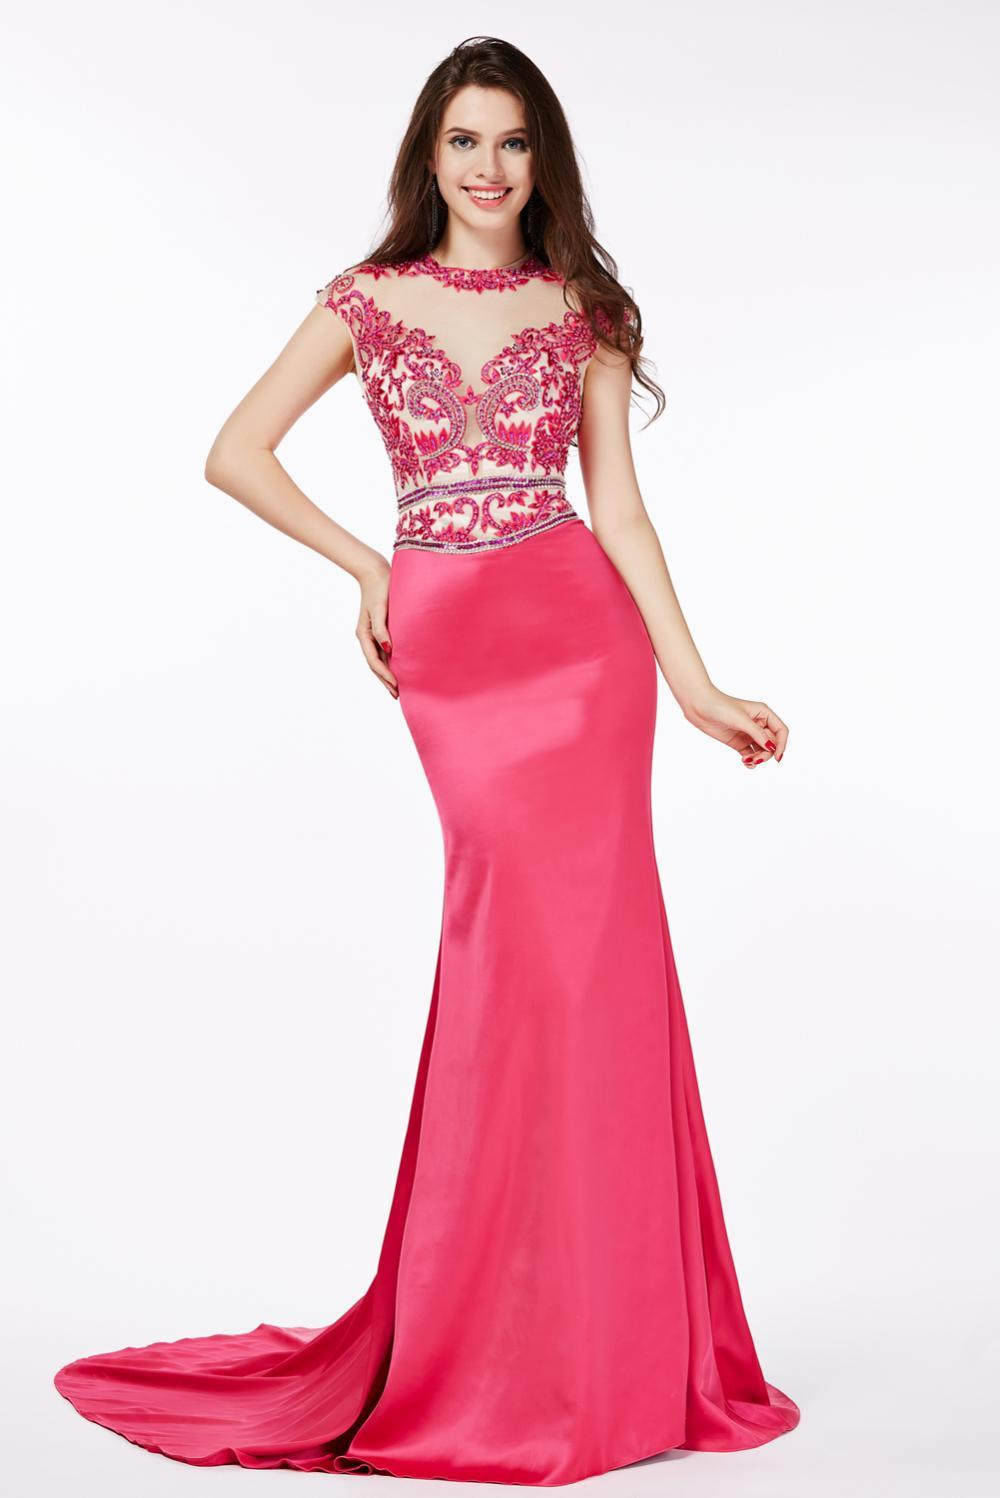 Sheath/Column Jewel Neck Floor Length Elastic Satin Evening Dress with Beadings